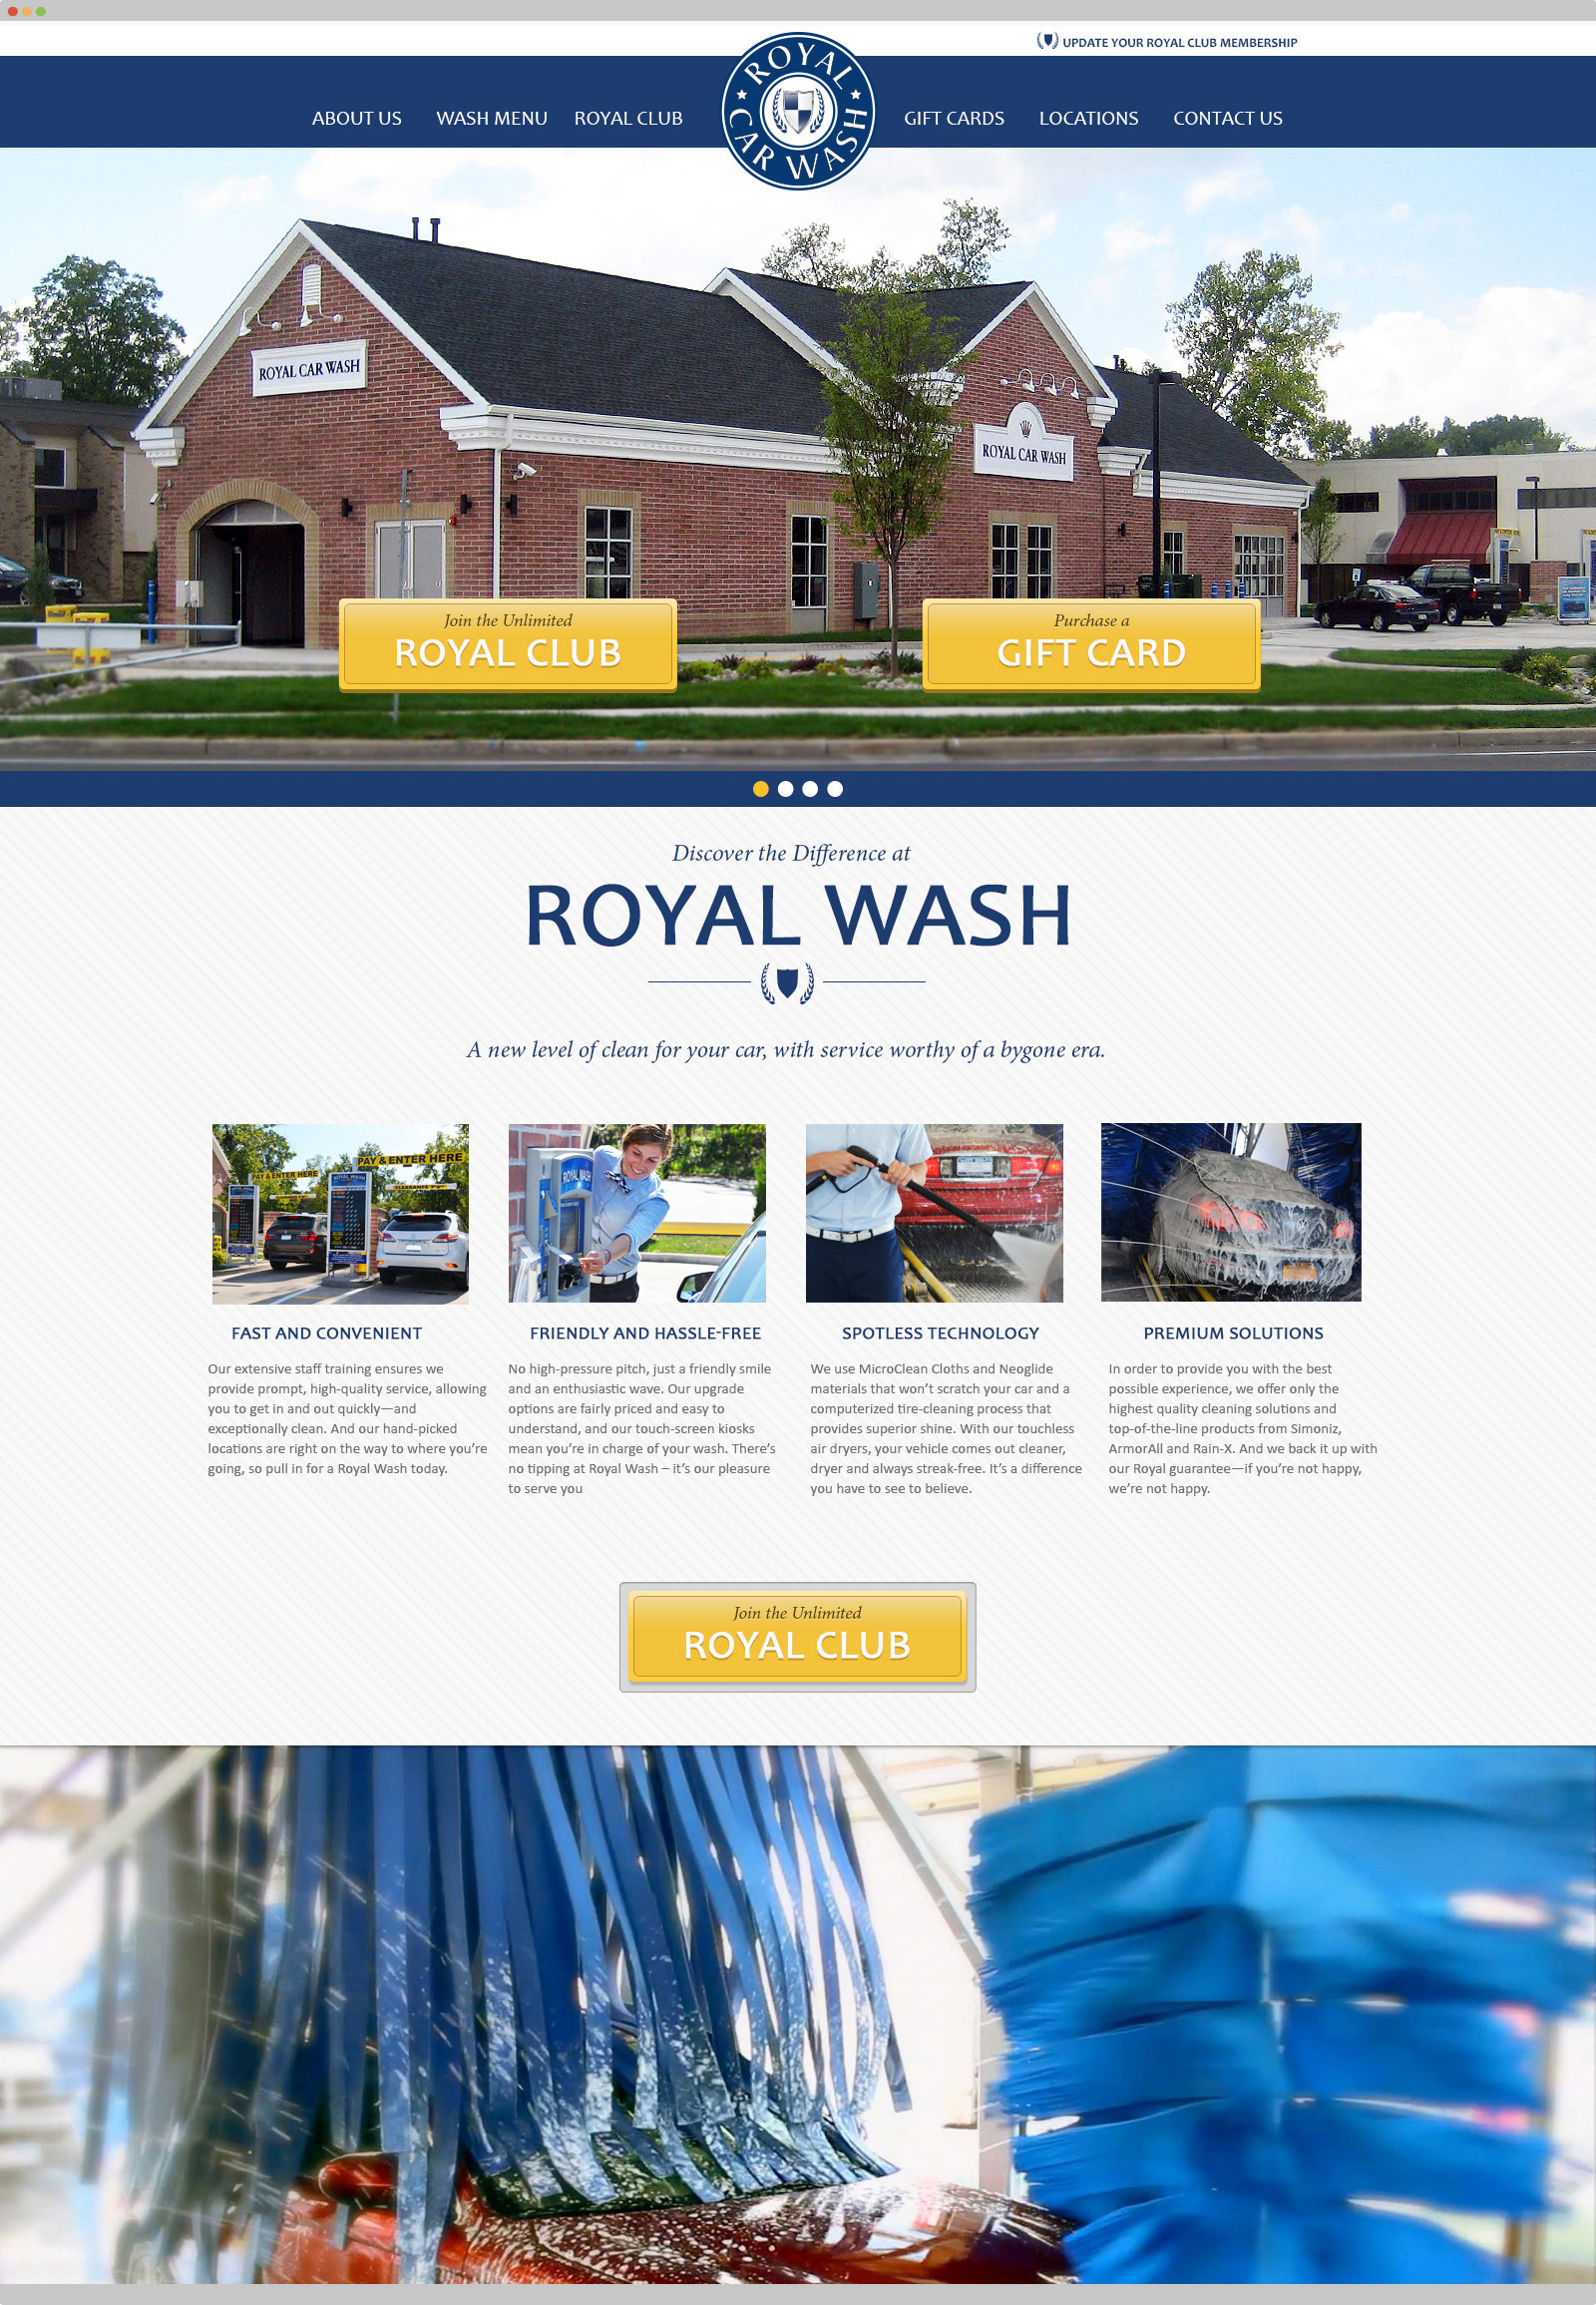 Royal Wash website design